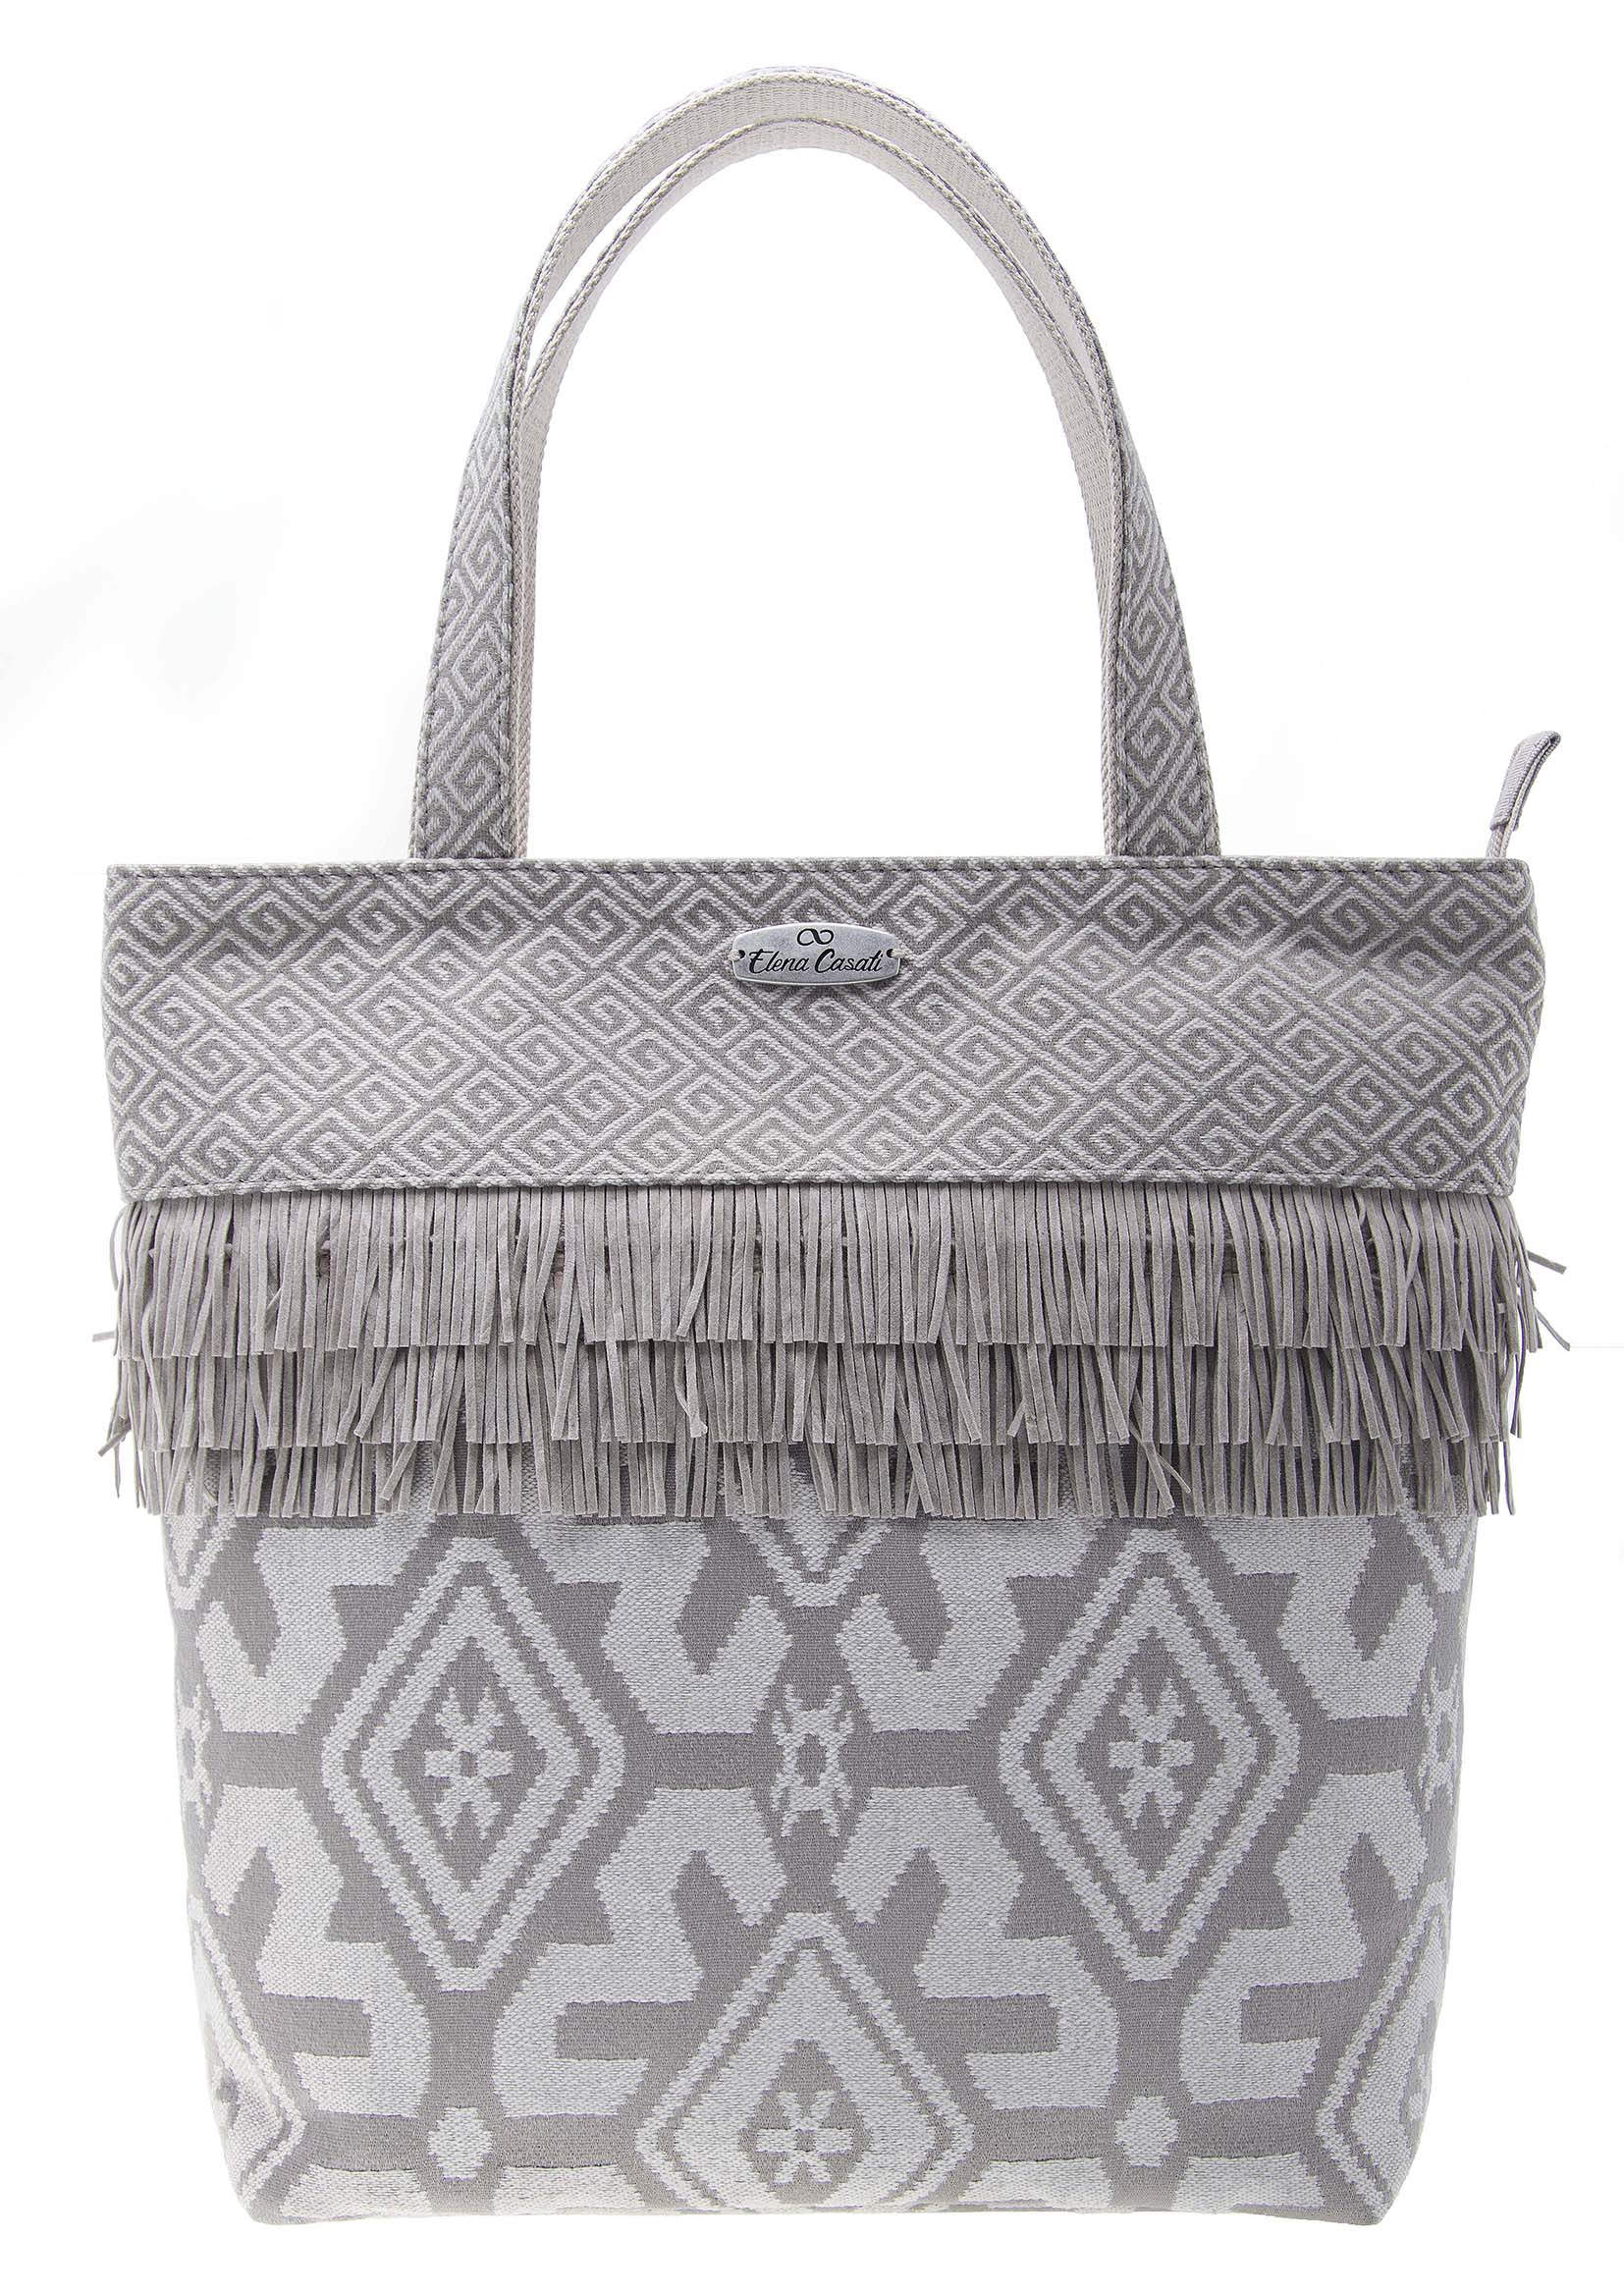 7-Shopping Bag Frange Beige DAV